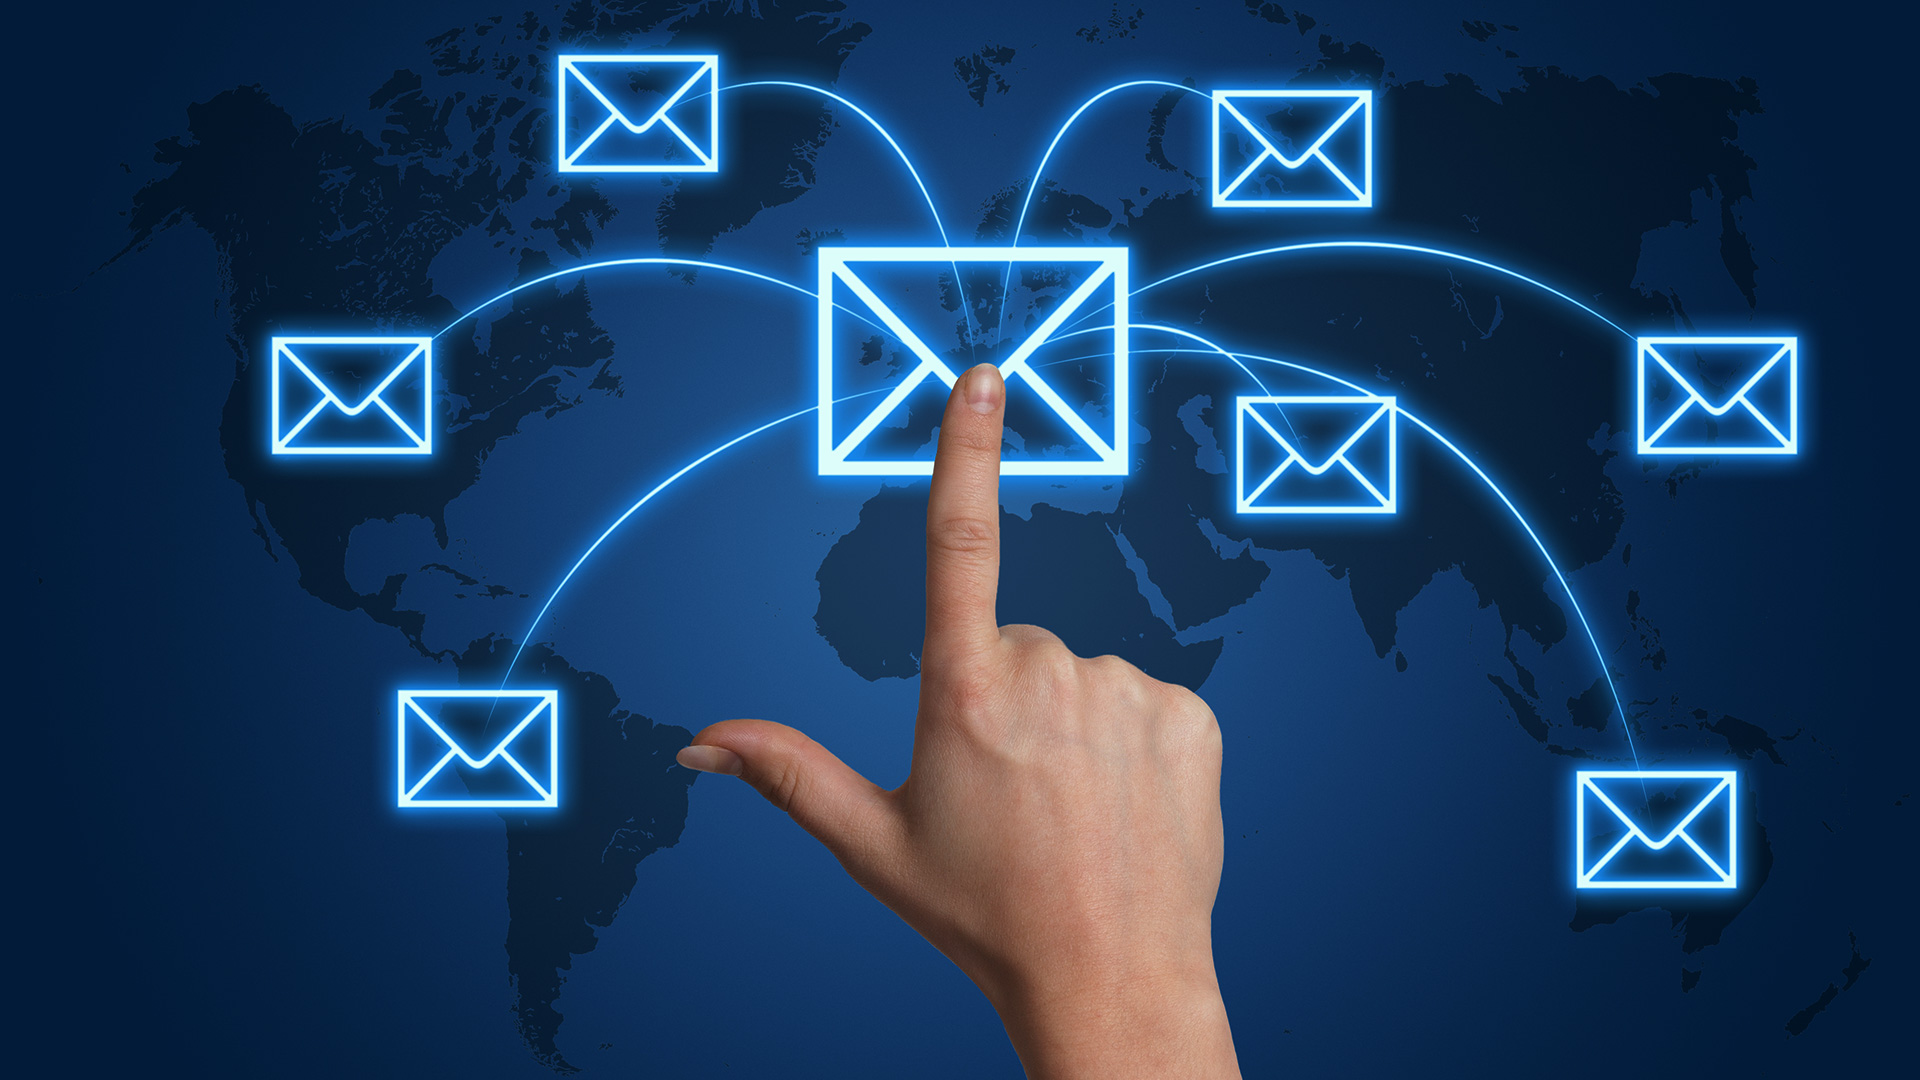 email-send-ss-1920